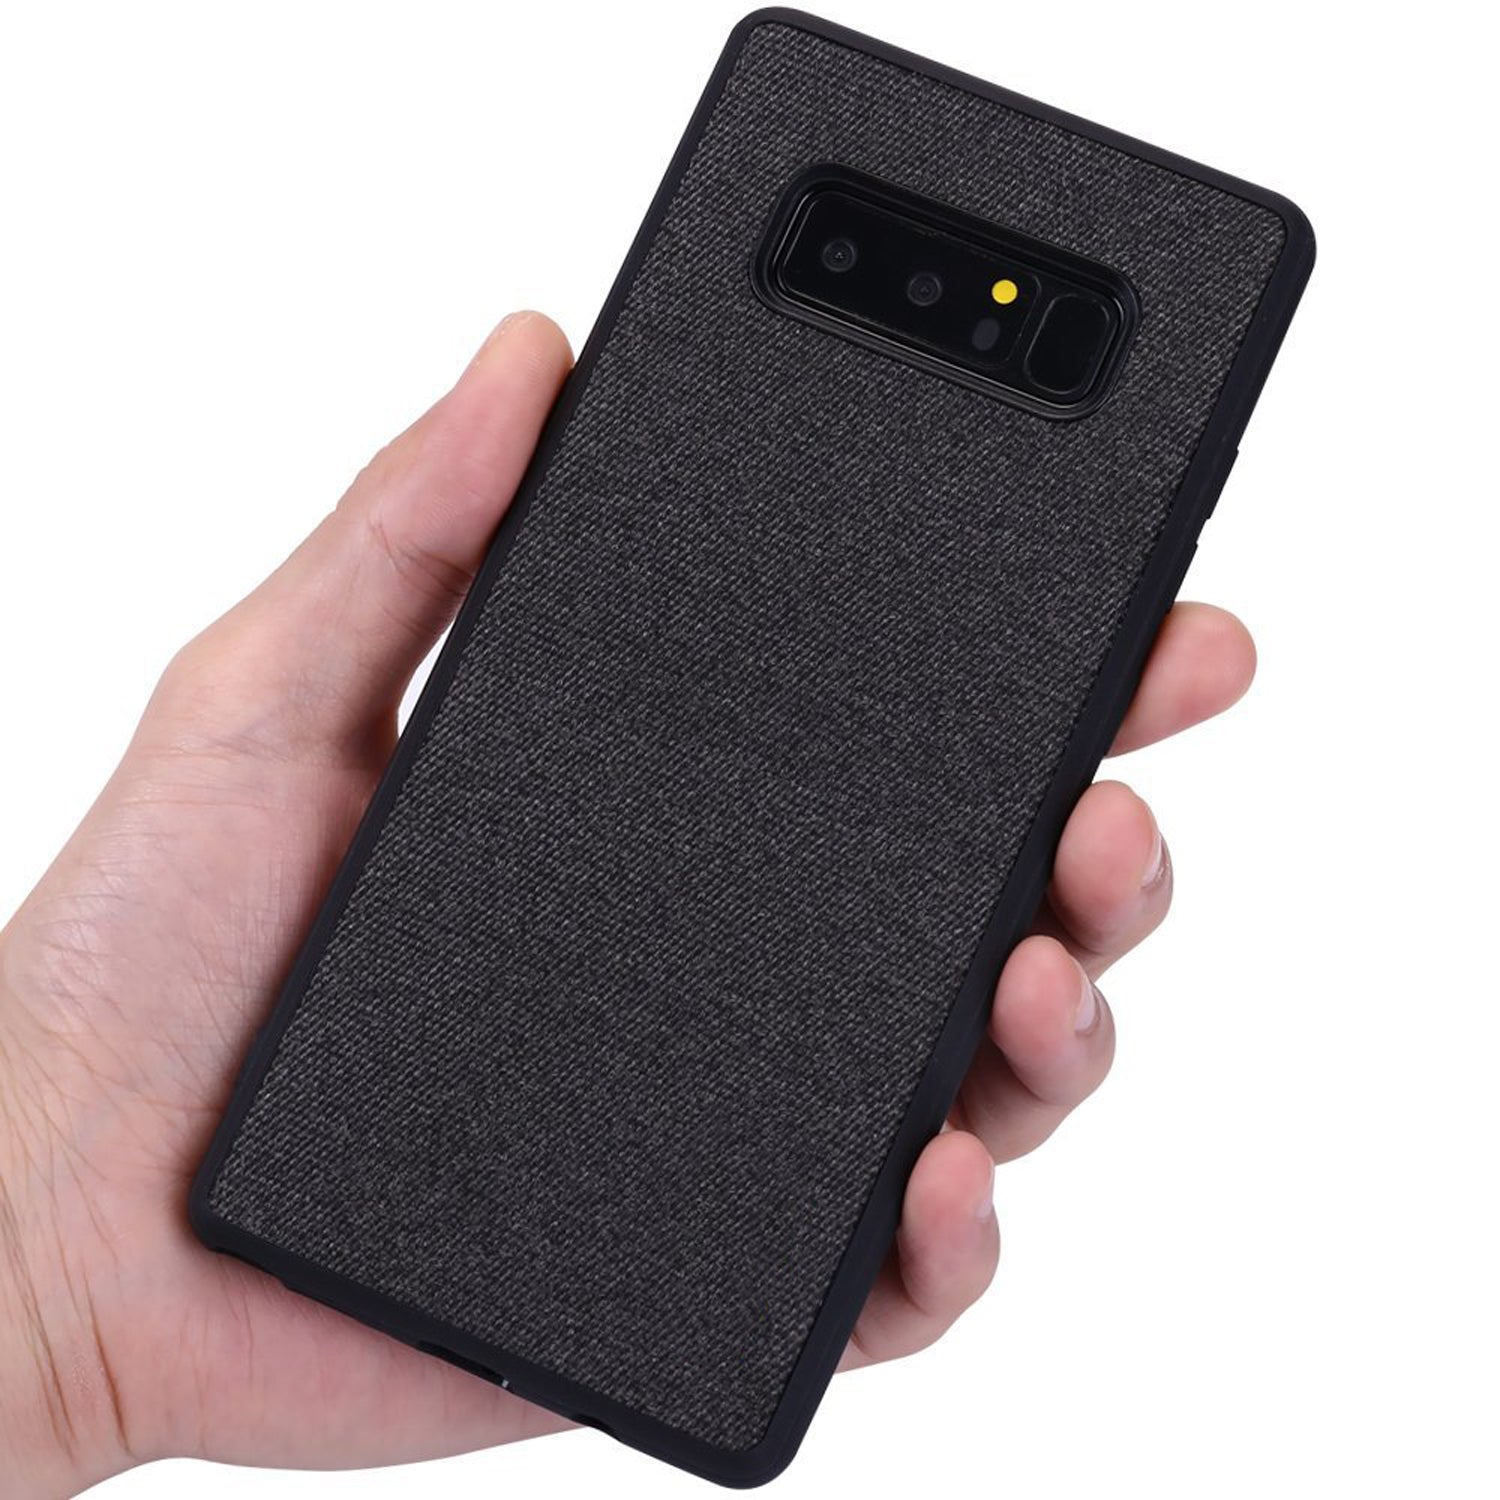 Fabric Hybrid Protective Case Cover for Samsung Galaxy Note 8 - Black - Mobizang